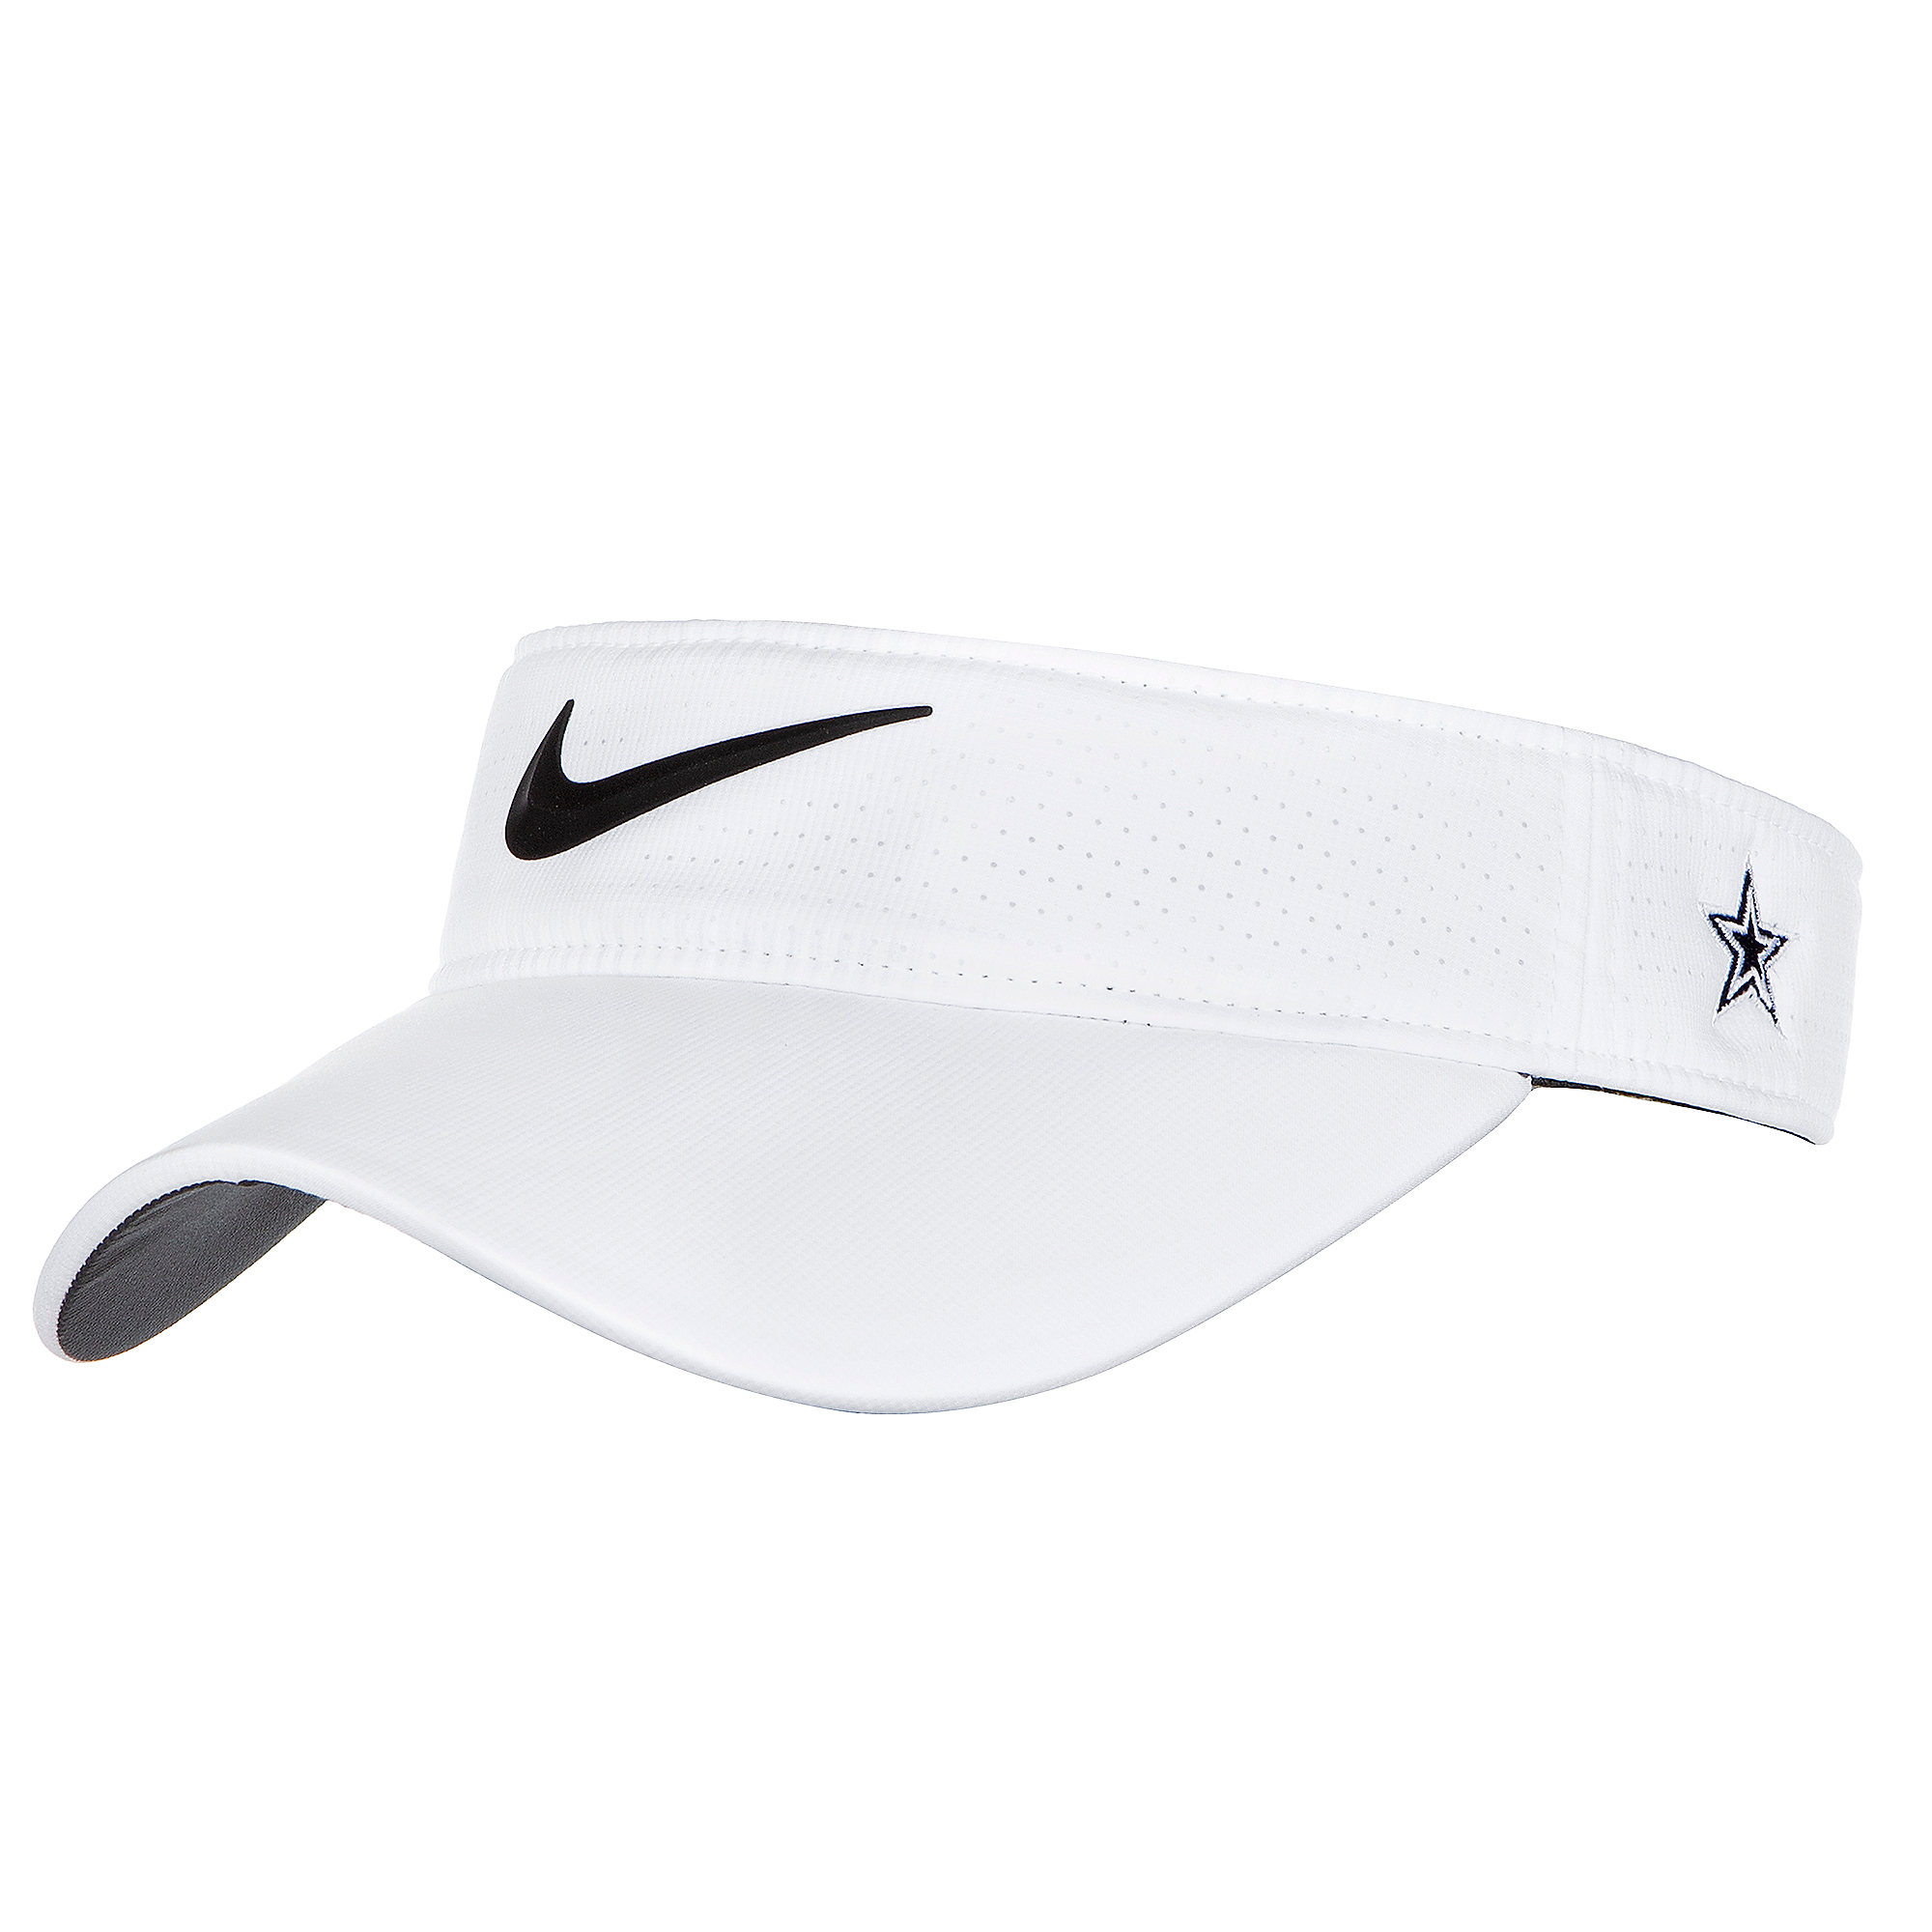 Dallas Cowboys Nike Womens White AeroBill Visor